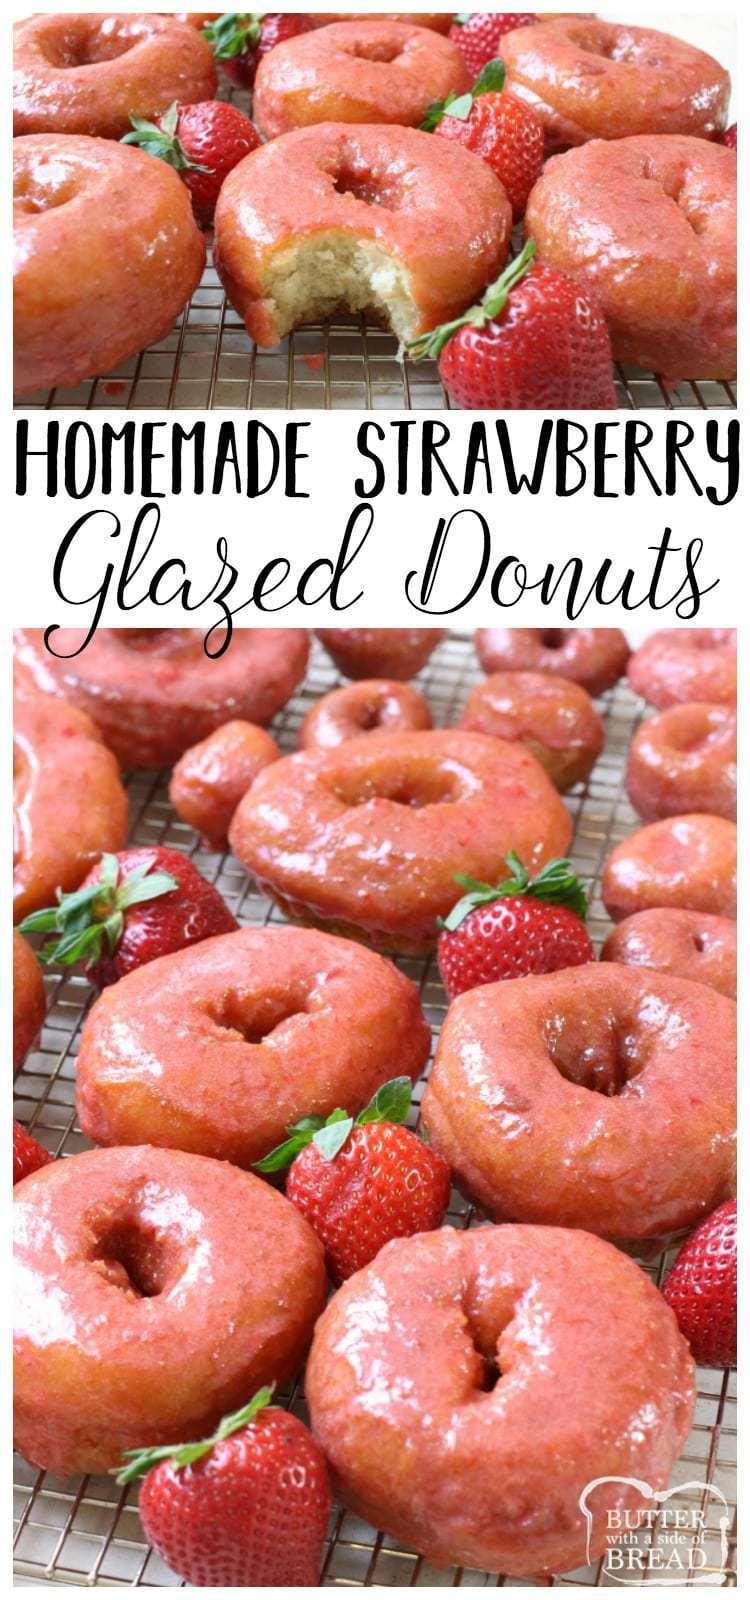 Homemade Strawberry Glazed Donuts - Butter With A Side of Bread